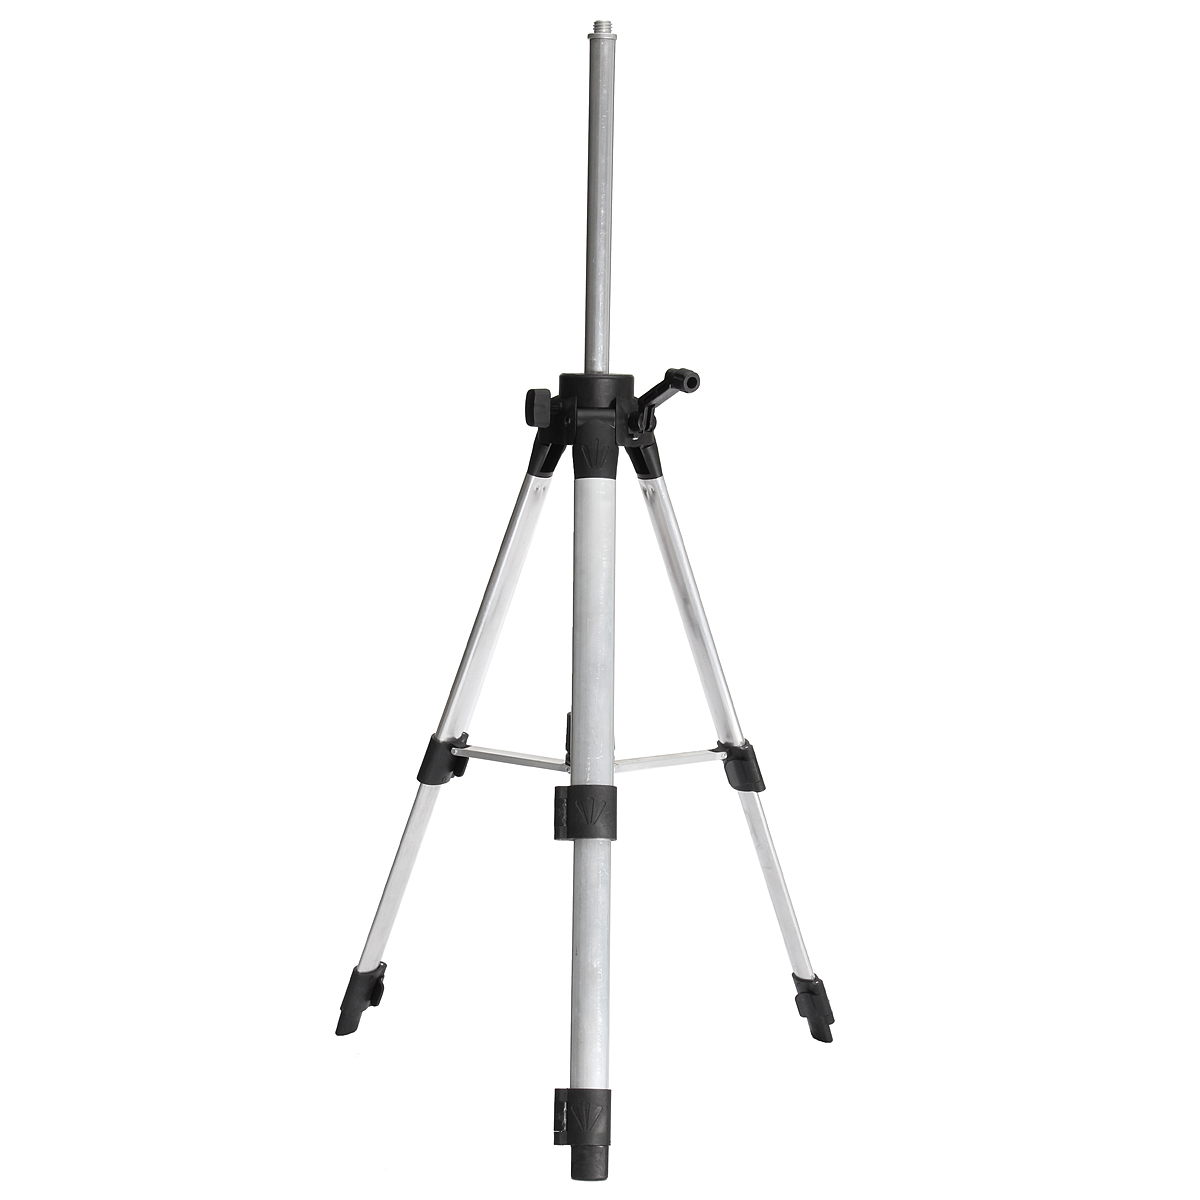 Professional 8 Line Rotary Laser Beam Self Leveling Exterior Level Tripod